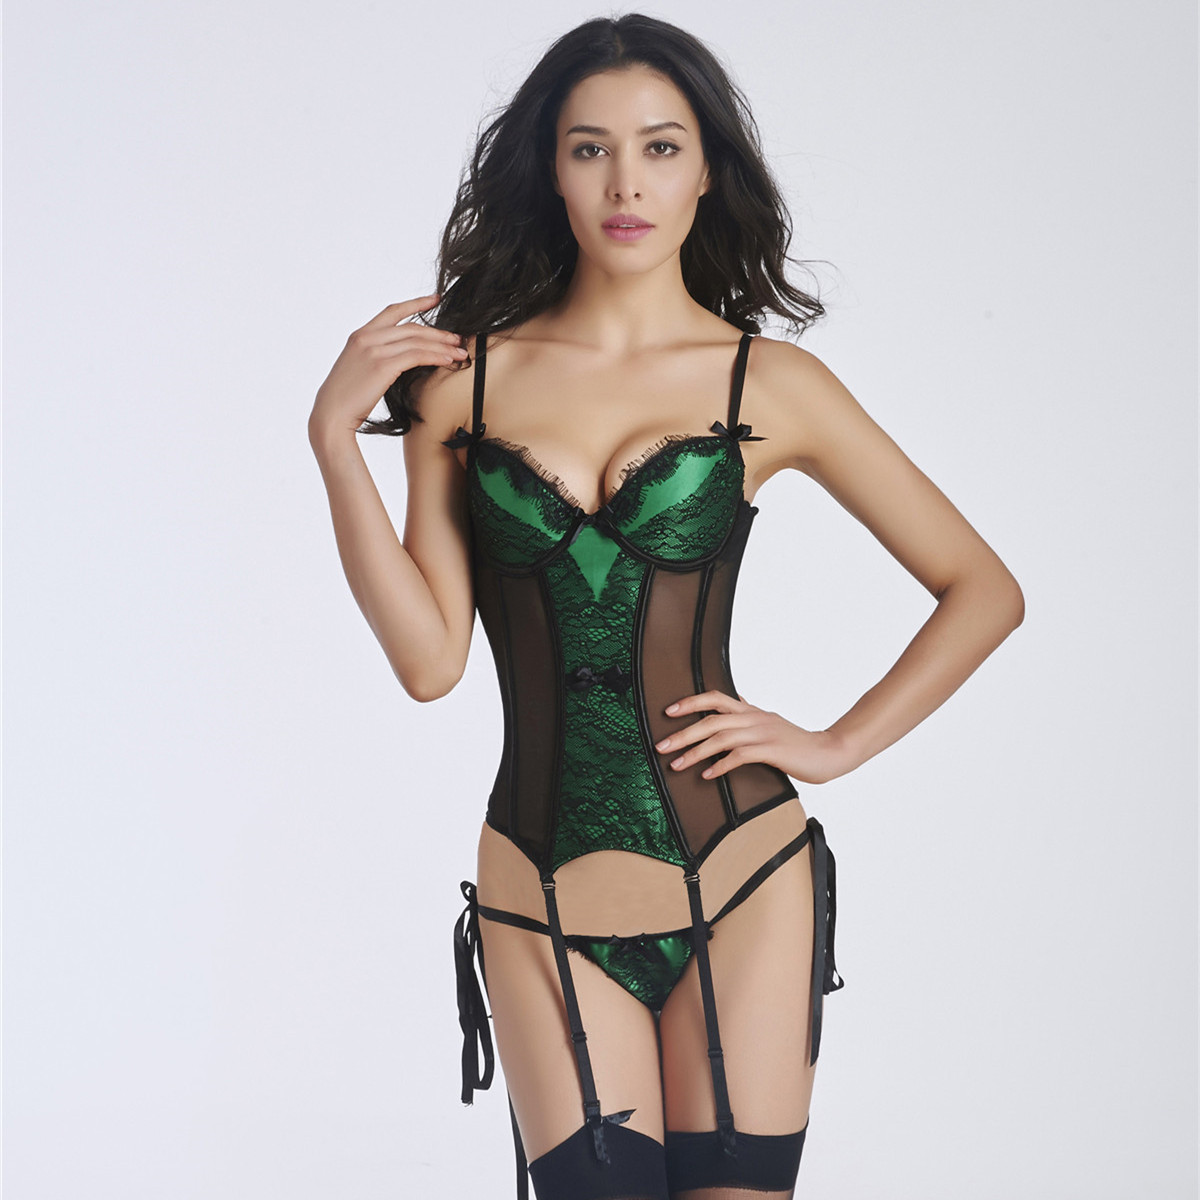 New High Elasticity   Corset     Bustier   With Cup Girdle Set With Straps Belt Breathable Fabric Lingerie Black   corset   dress